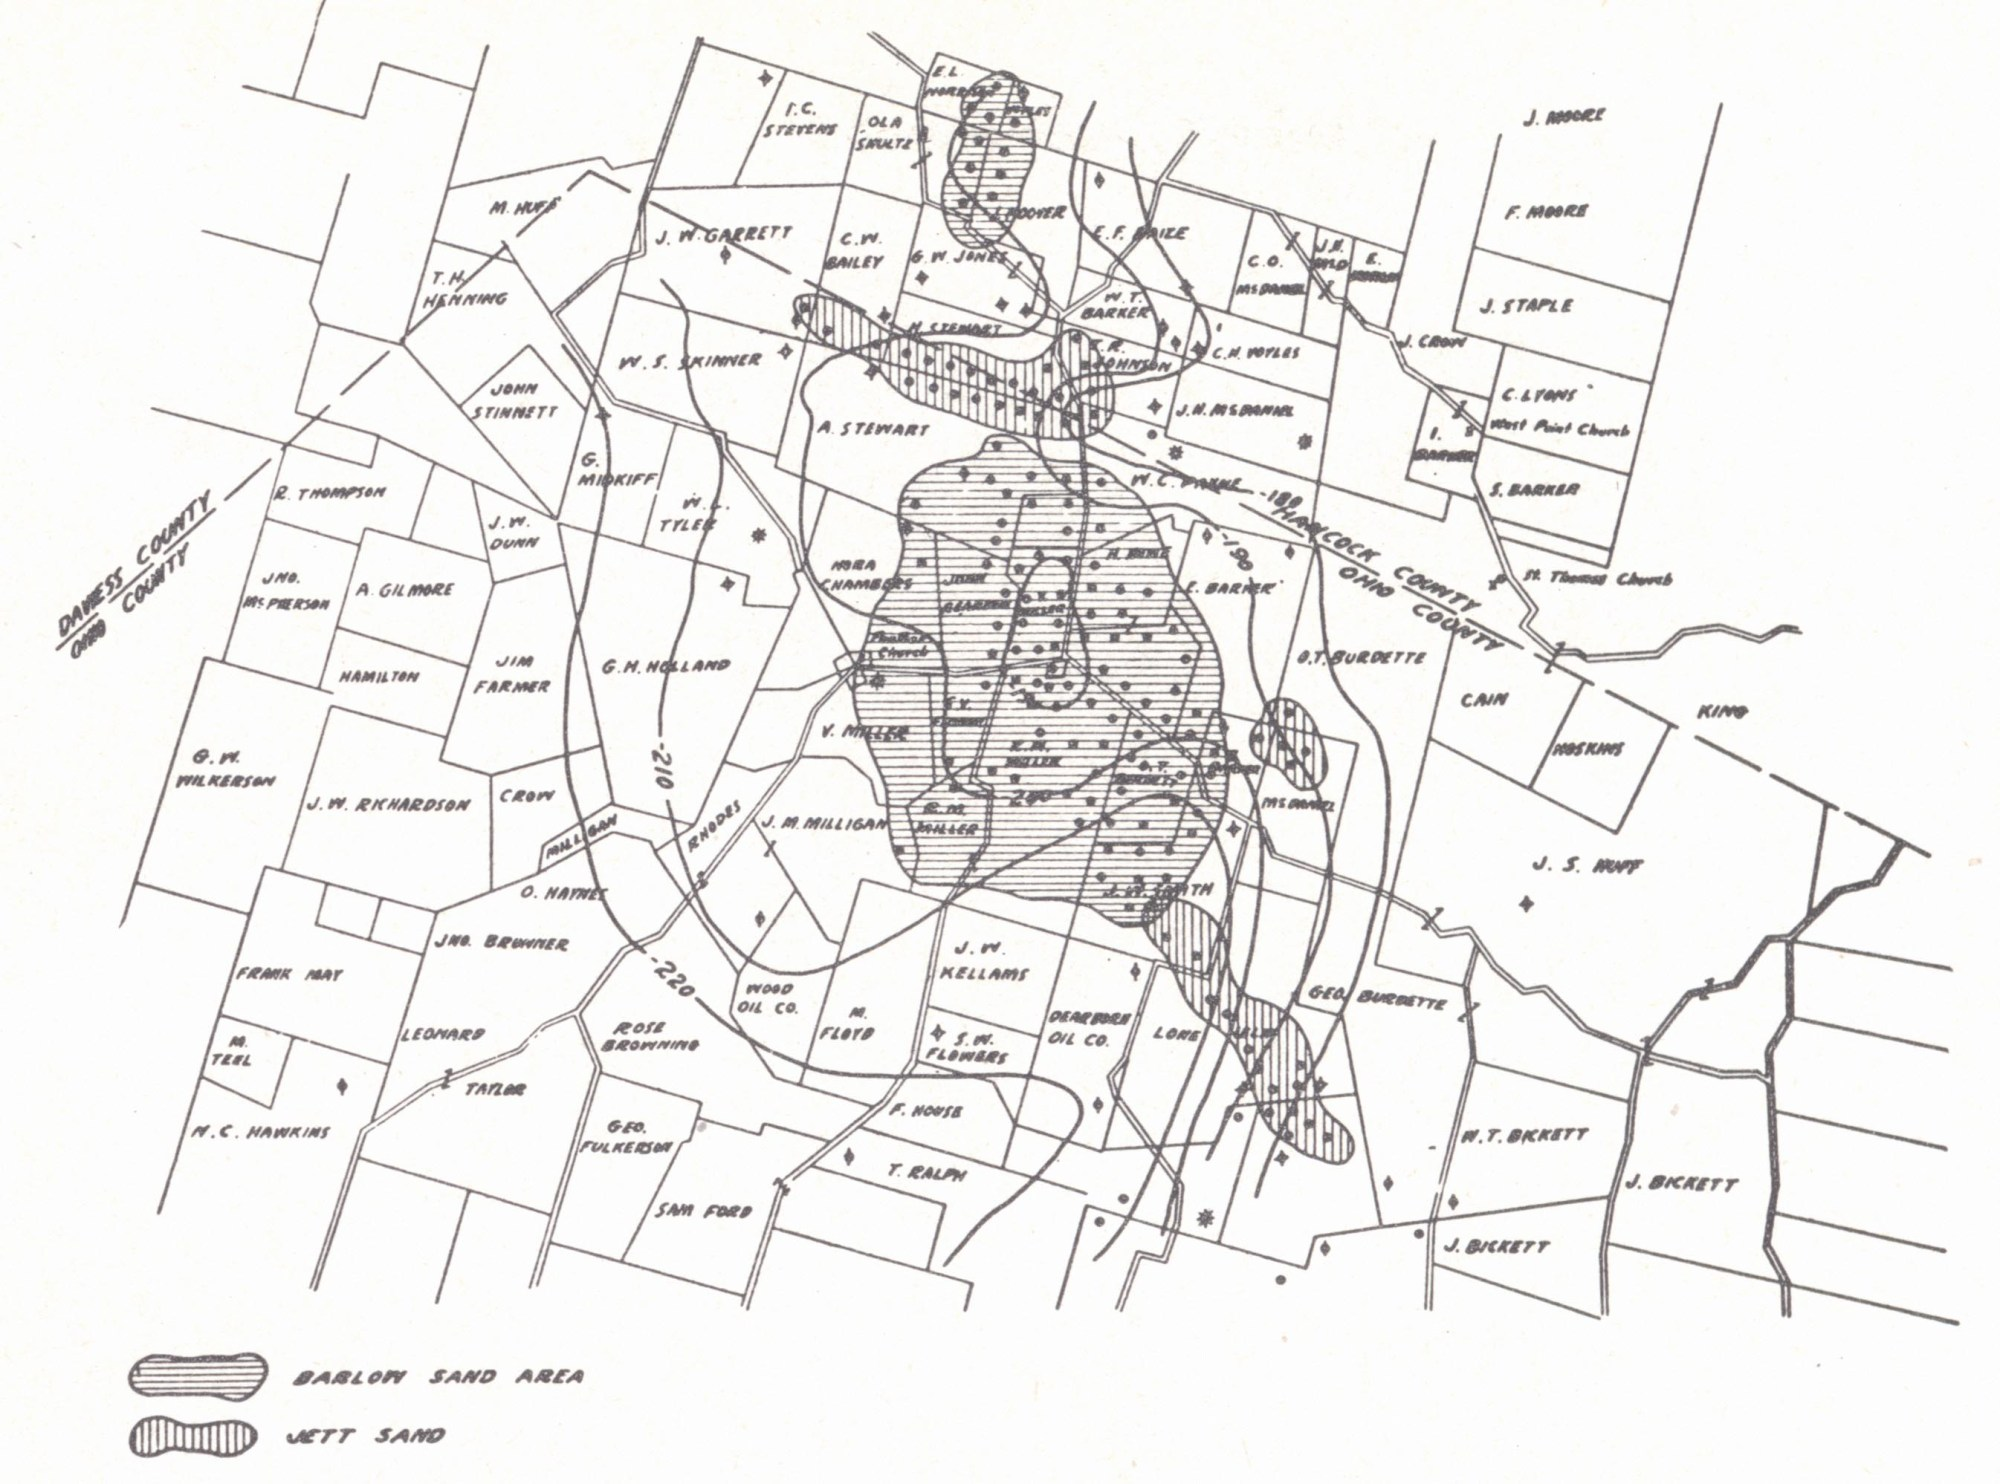 hight resolution of structure map ambrose weller pool ohio county contoured on the top of the vienna brown lime limestone shiarella 1933 the occurrence of oil i